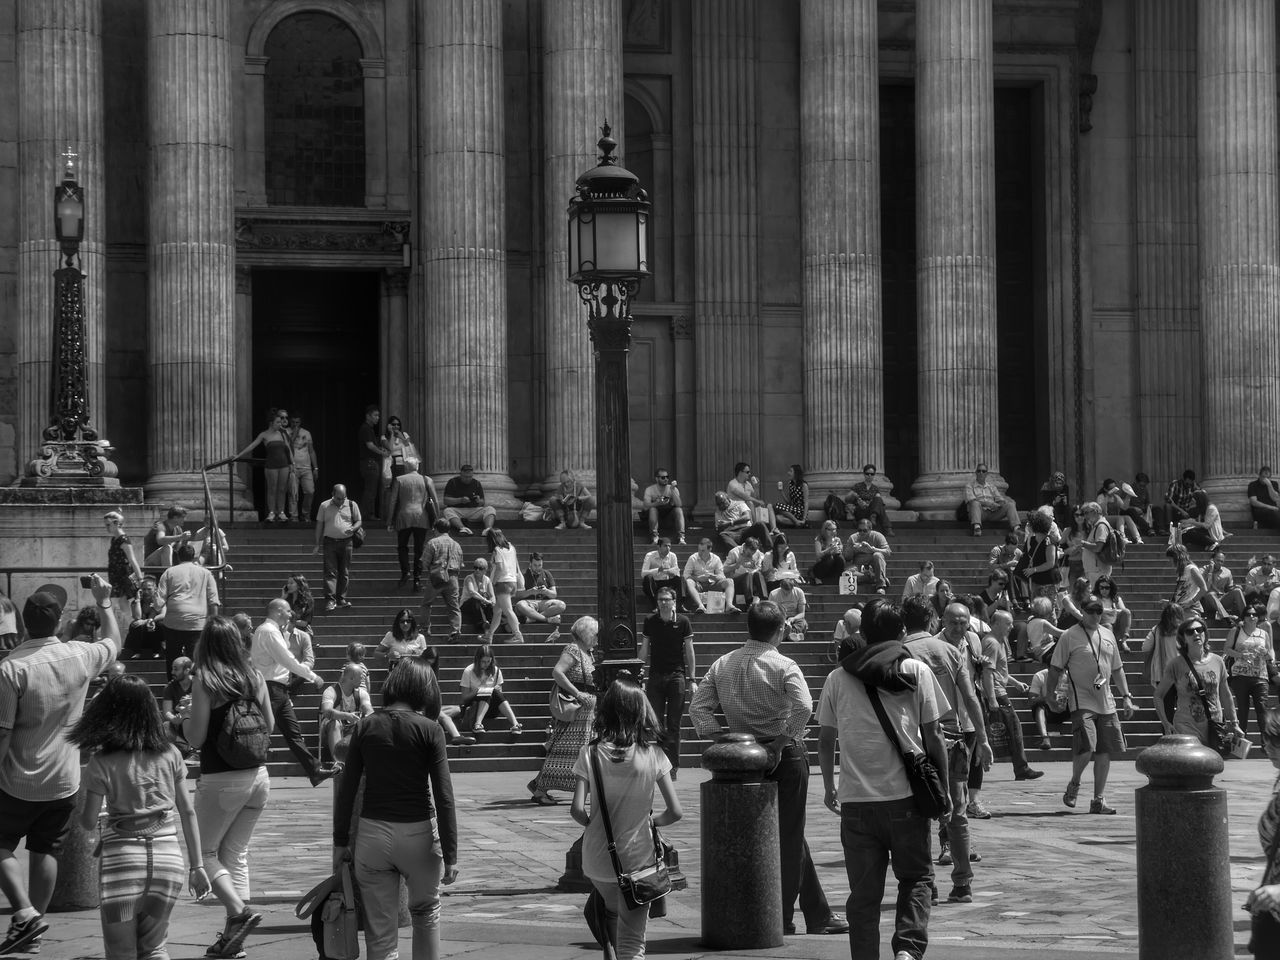 3...at st.pauls cathedral .... The Street Photographer - 2014 EyeEm Awards Thestoryteller-2014eyeemawards England What Does Peace Look Like To You?..the occupy protest started on15.10.2011 and ended on 14.6.2012 .it was a non-violent protest against economic inequality, social injustice etc..as a tourist i found this place crowded by people stting along steps and the cathedrals close , just wondering about that until my dear eyeem buddy joni told me about it... Under Pressure